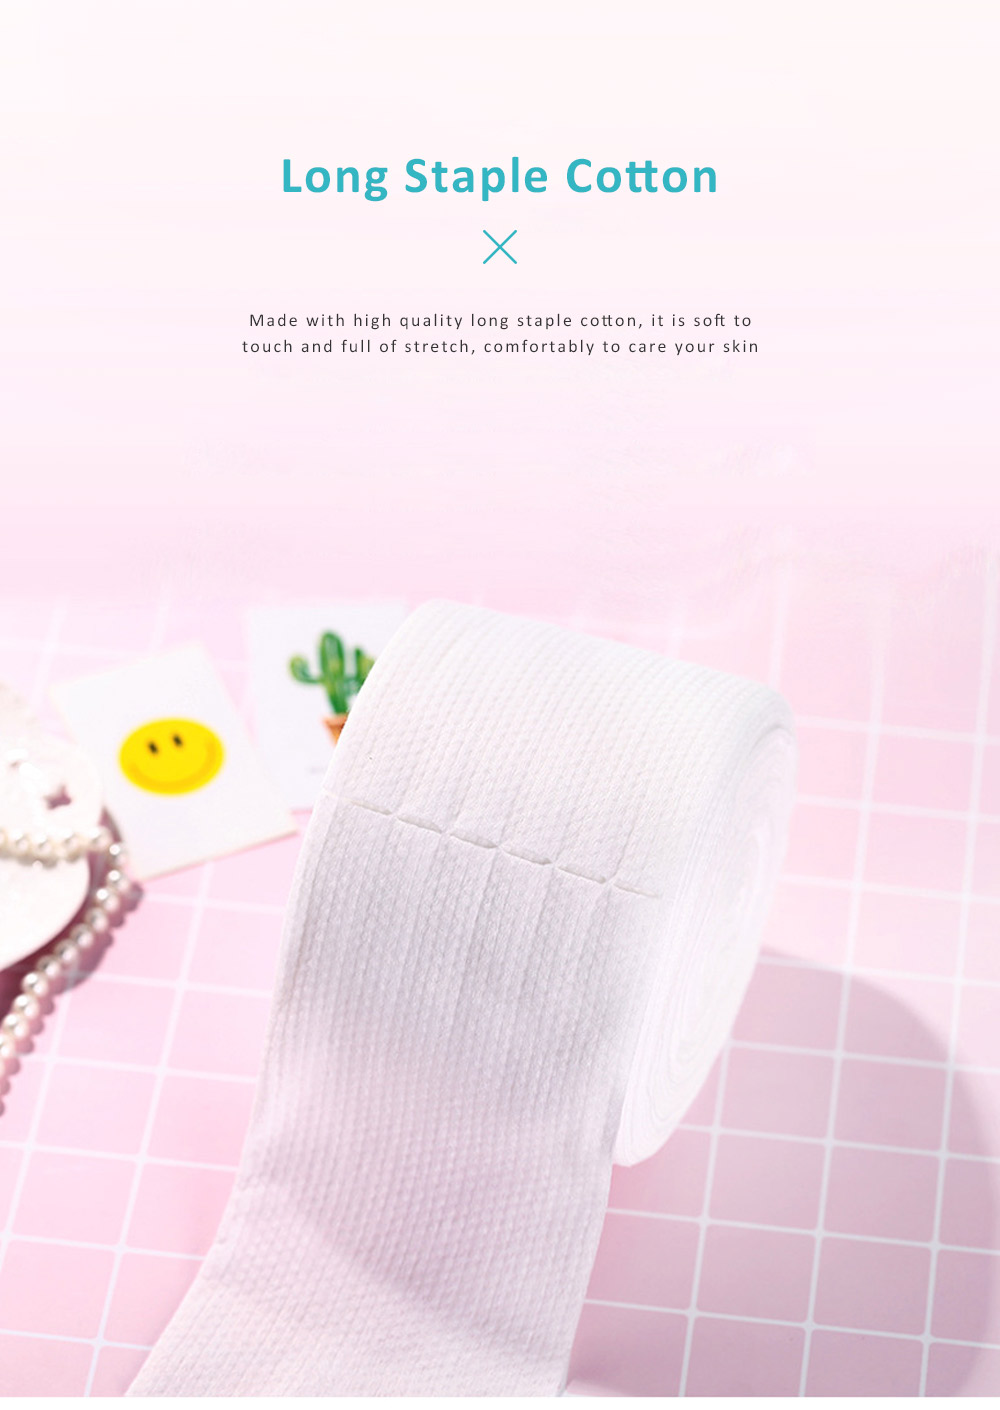 Dual Use Dry Wet Face Towel Make Up Cleanser Disposable Facial Cleaning Tissue Natural Cotton Soft Towel Hygienic Makeup Accessory 4